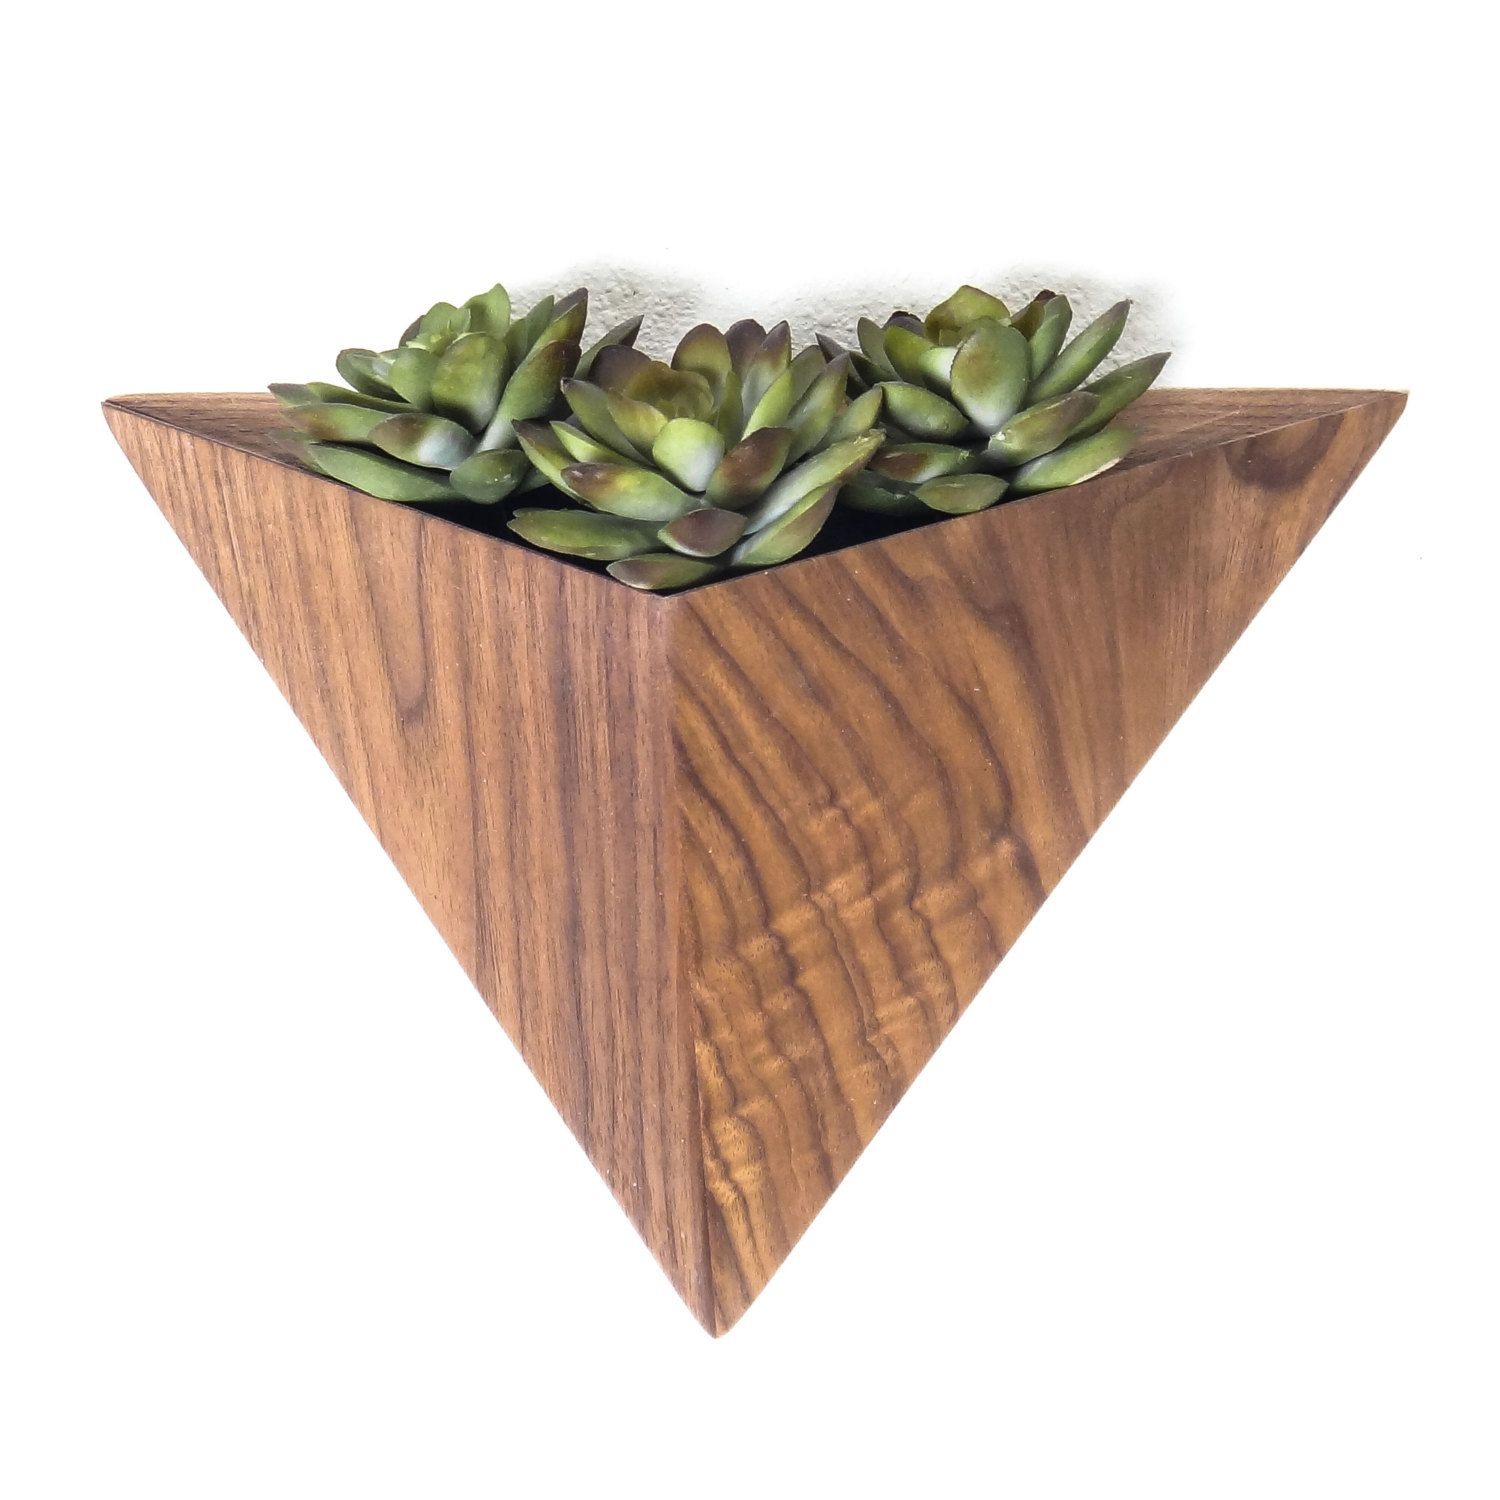 Wall Mounted Pots Geometric Hanging Planter Box Triangular Indoor Planter